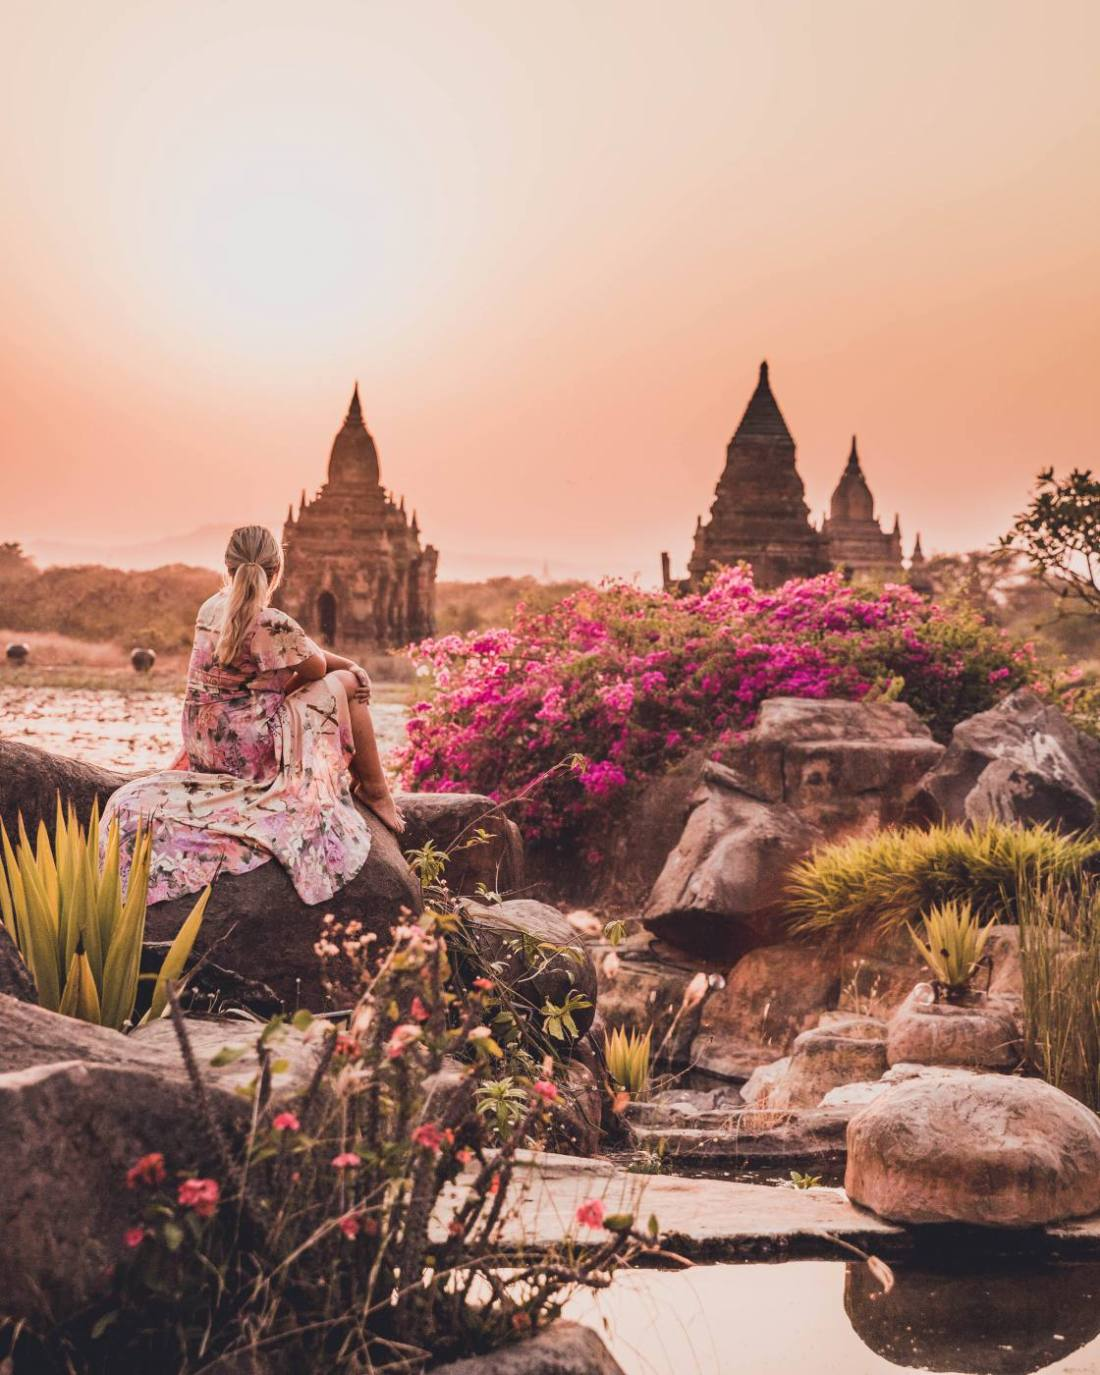 The Most Instagrammable places in Bagan, Myanmar